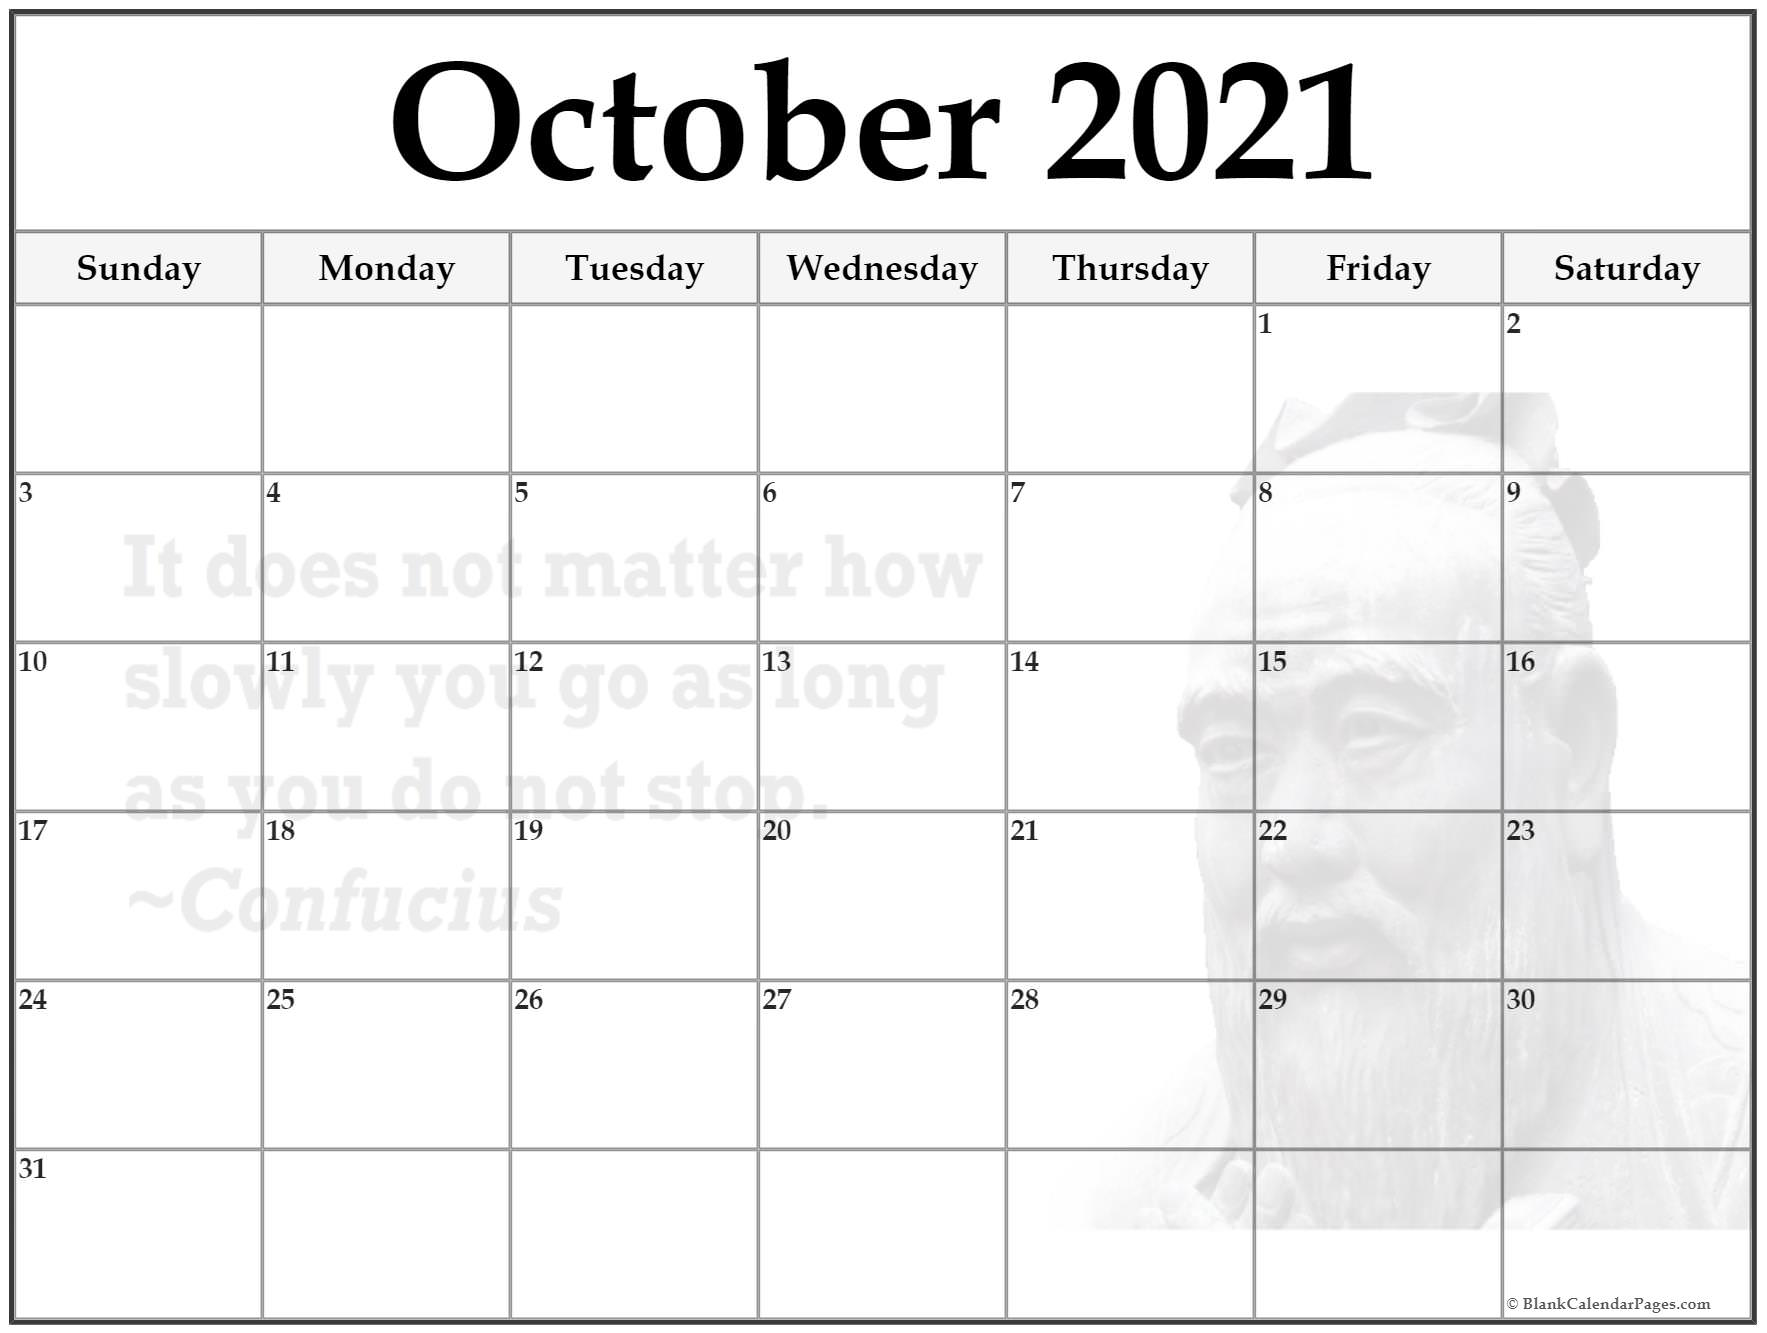 October 2018 monthly calendar template. It does not matter how slowly you go as long as you don't stop ~Confucius